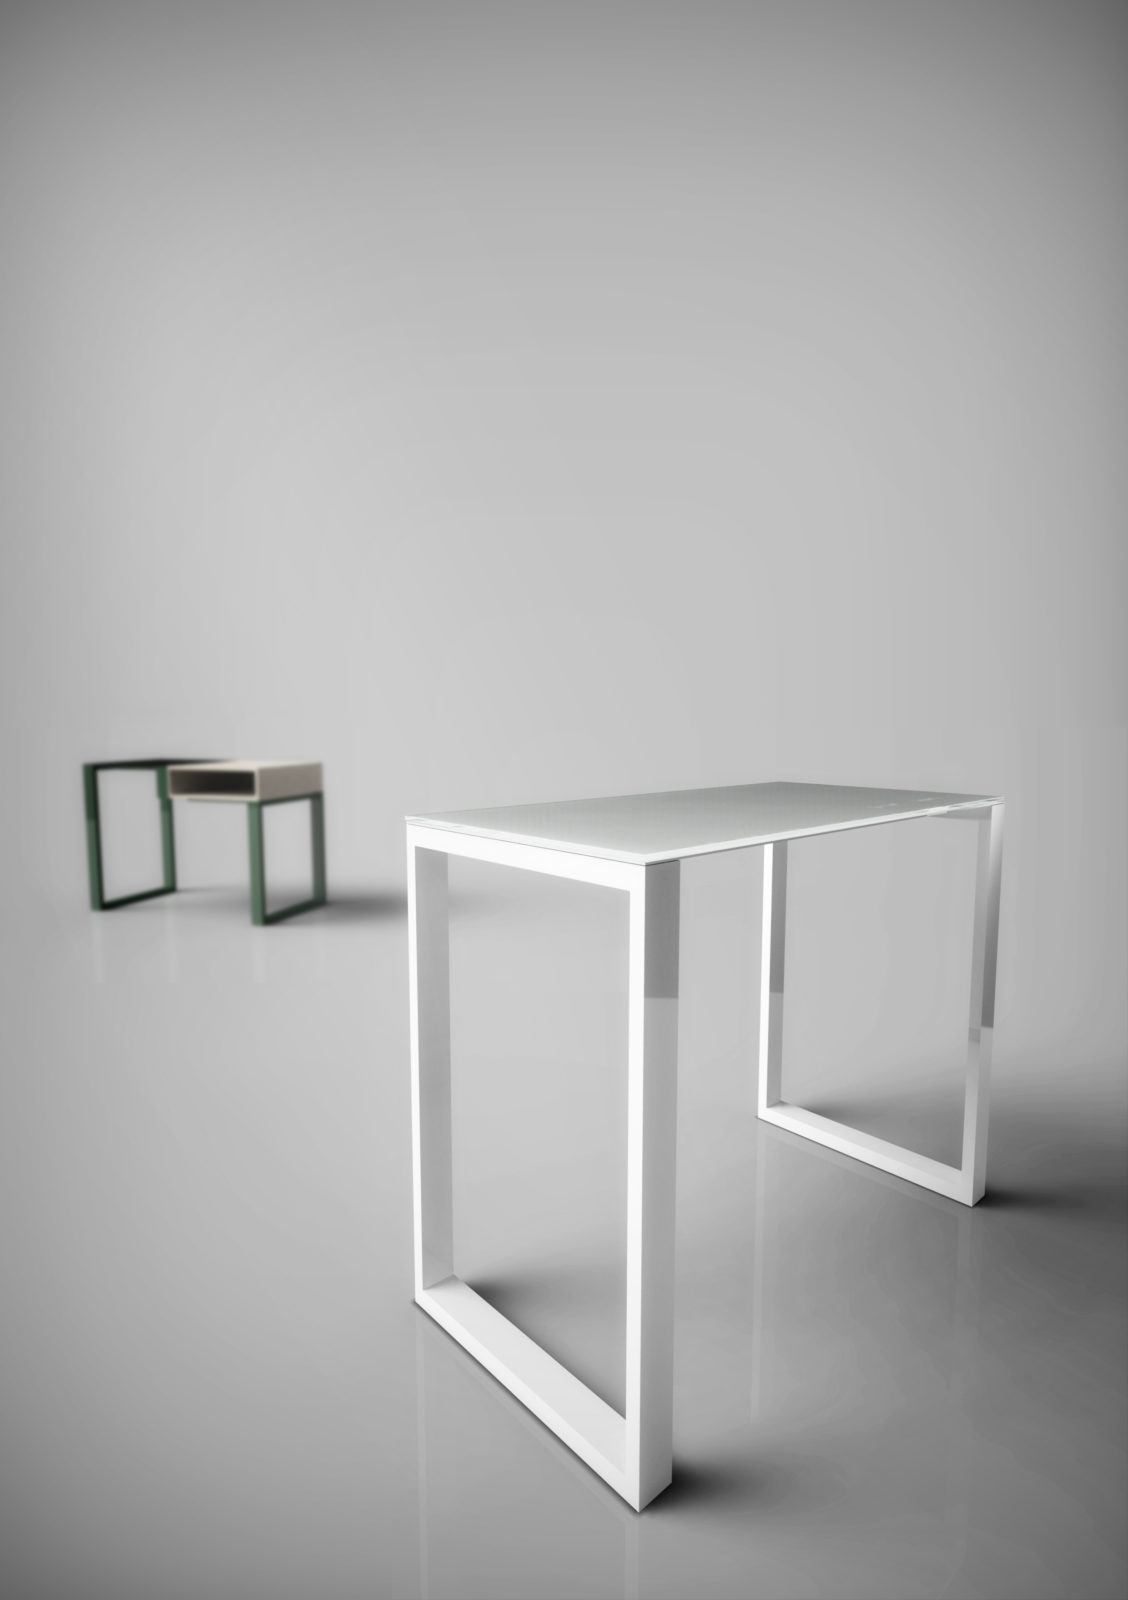 Table d'appoint hôtellerie ou console